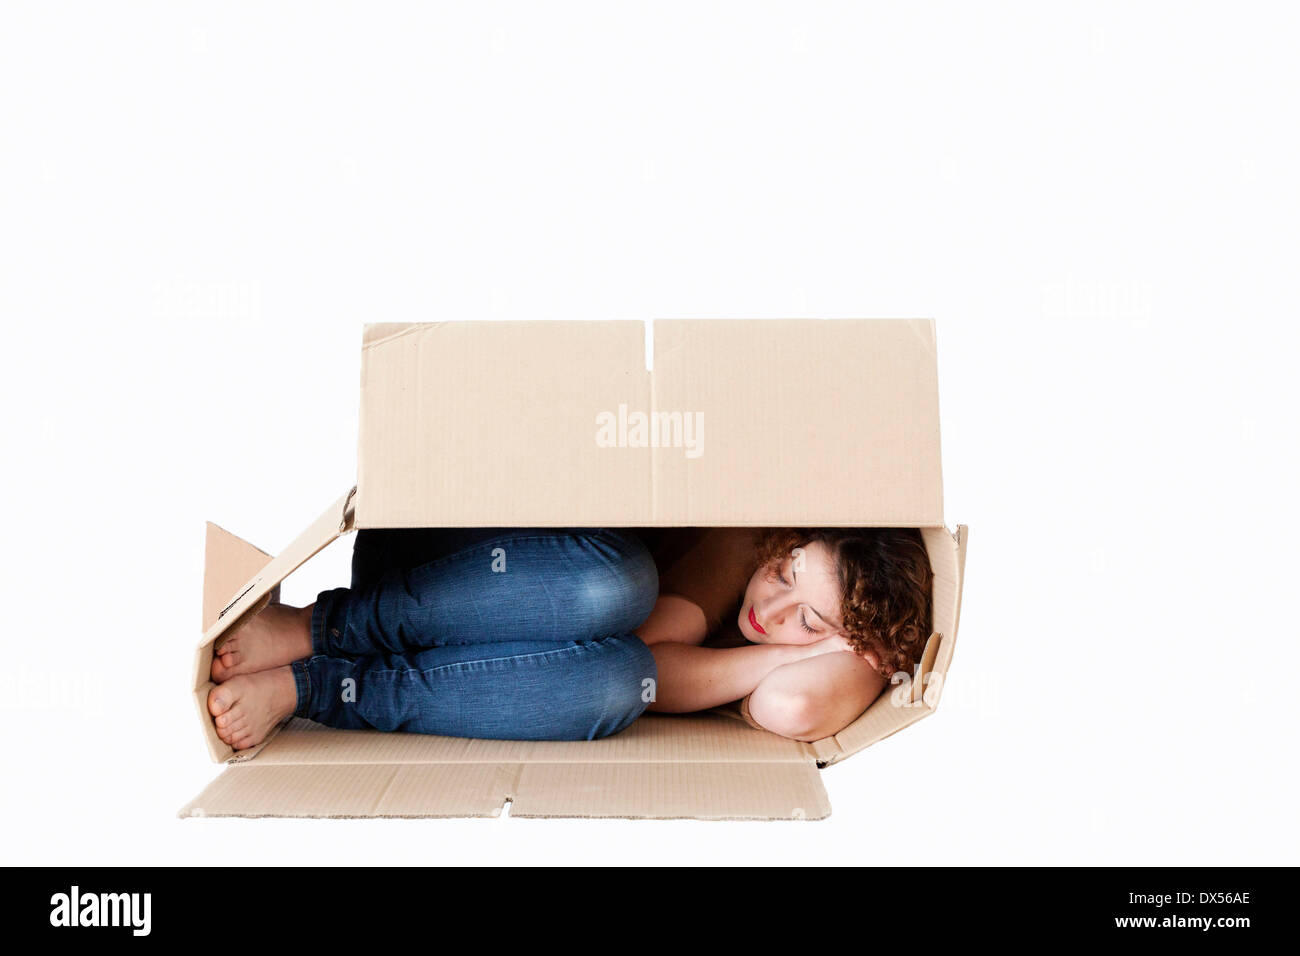 Young woman sleeping in a removal box - Stock Image